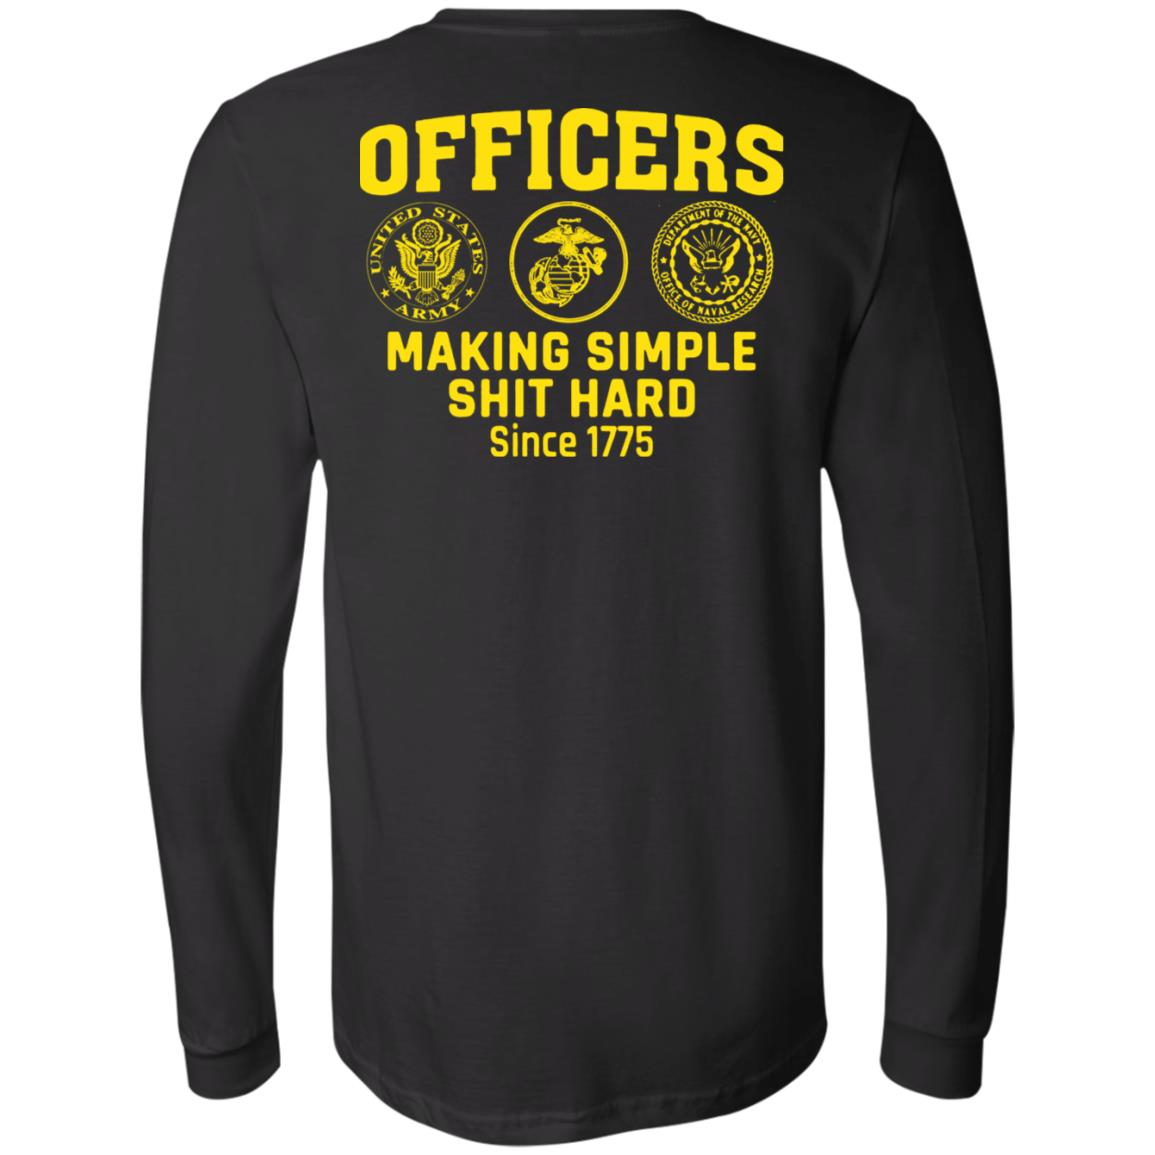 Officers – Making Simple Shit Hard Since 1775 Print On Back Long Sleeve